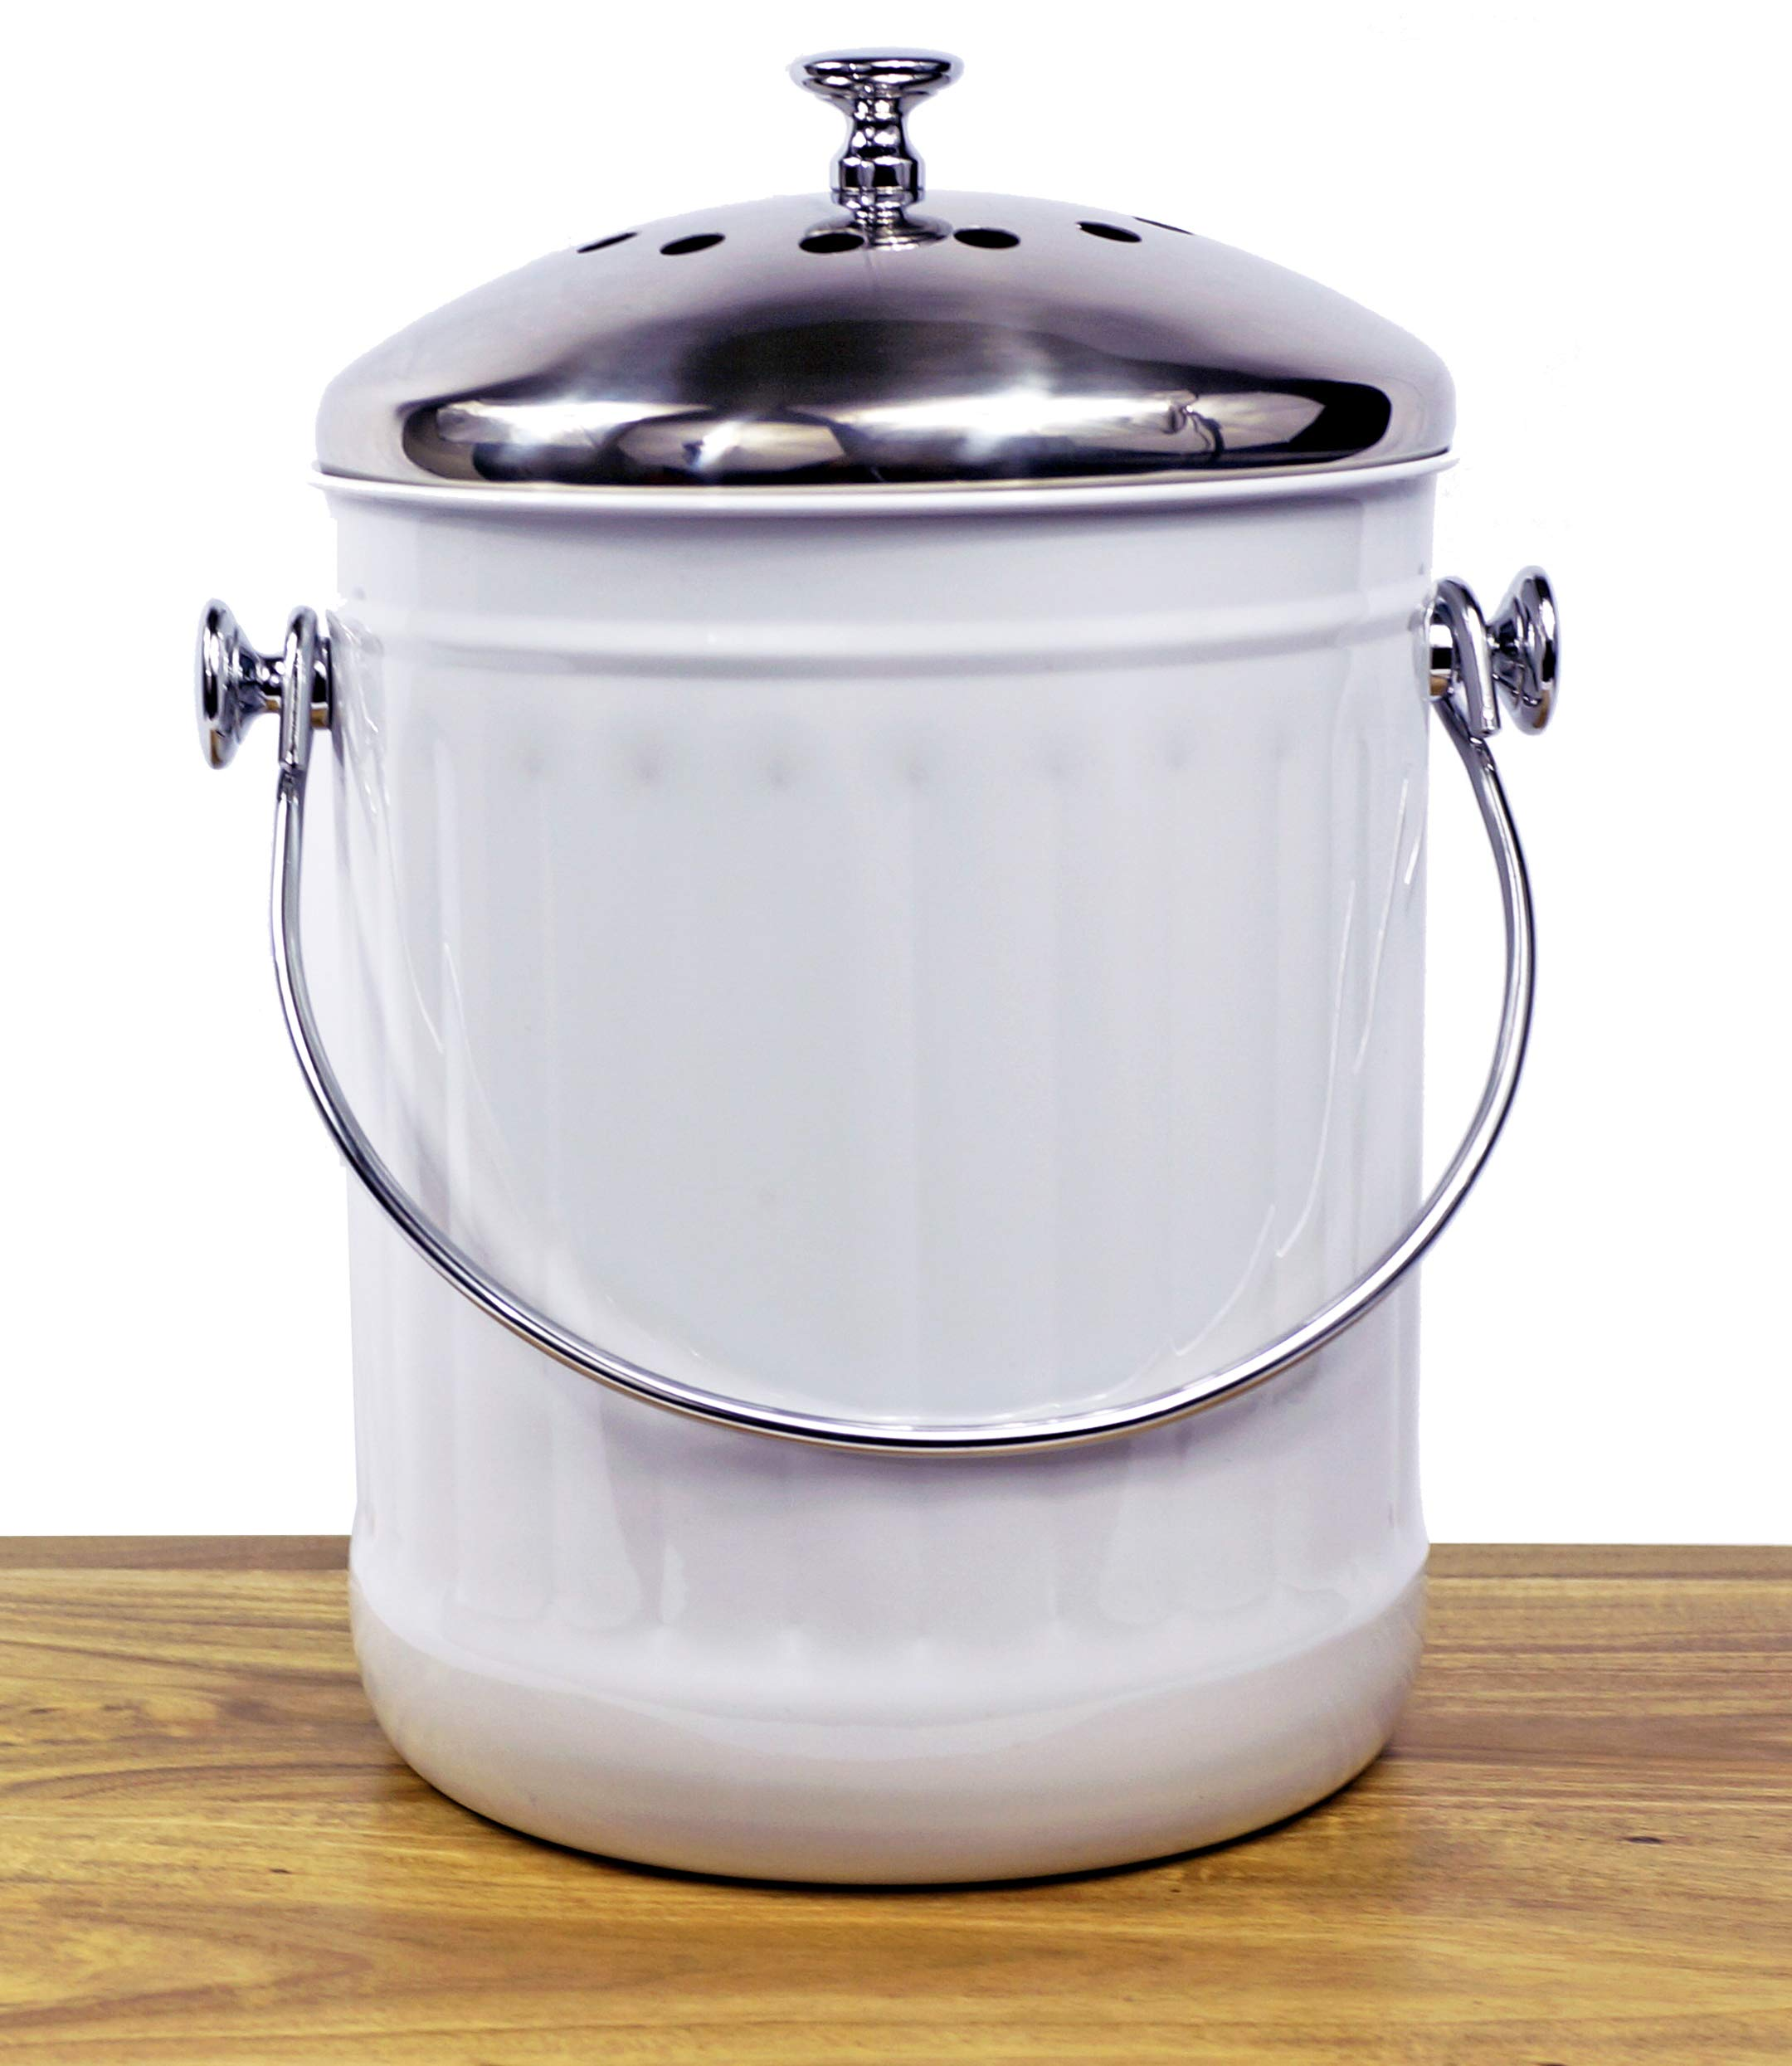 Indoor Kitchen Stainless Steel Compost Bin – White – 1.2 Gallon Container with Double Charcoal Filter for Odor Absorbing - Perfect Caddy for Any Counter Top - Non Stick Bucket for Easy Tossing